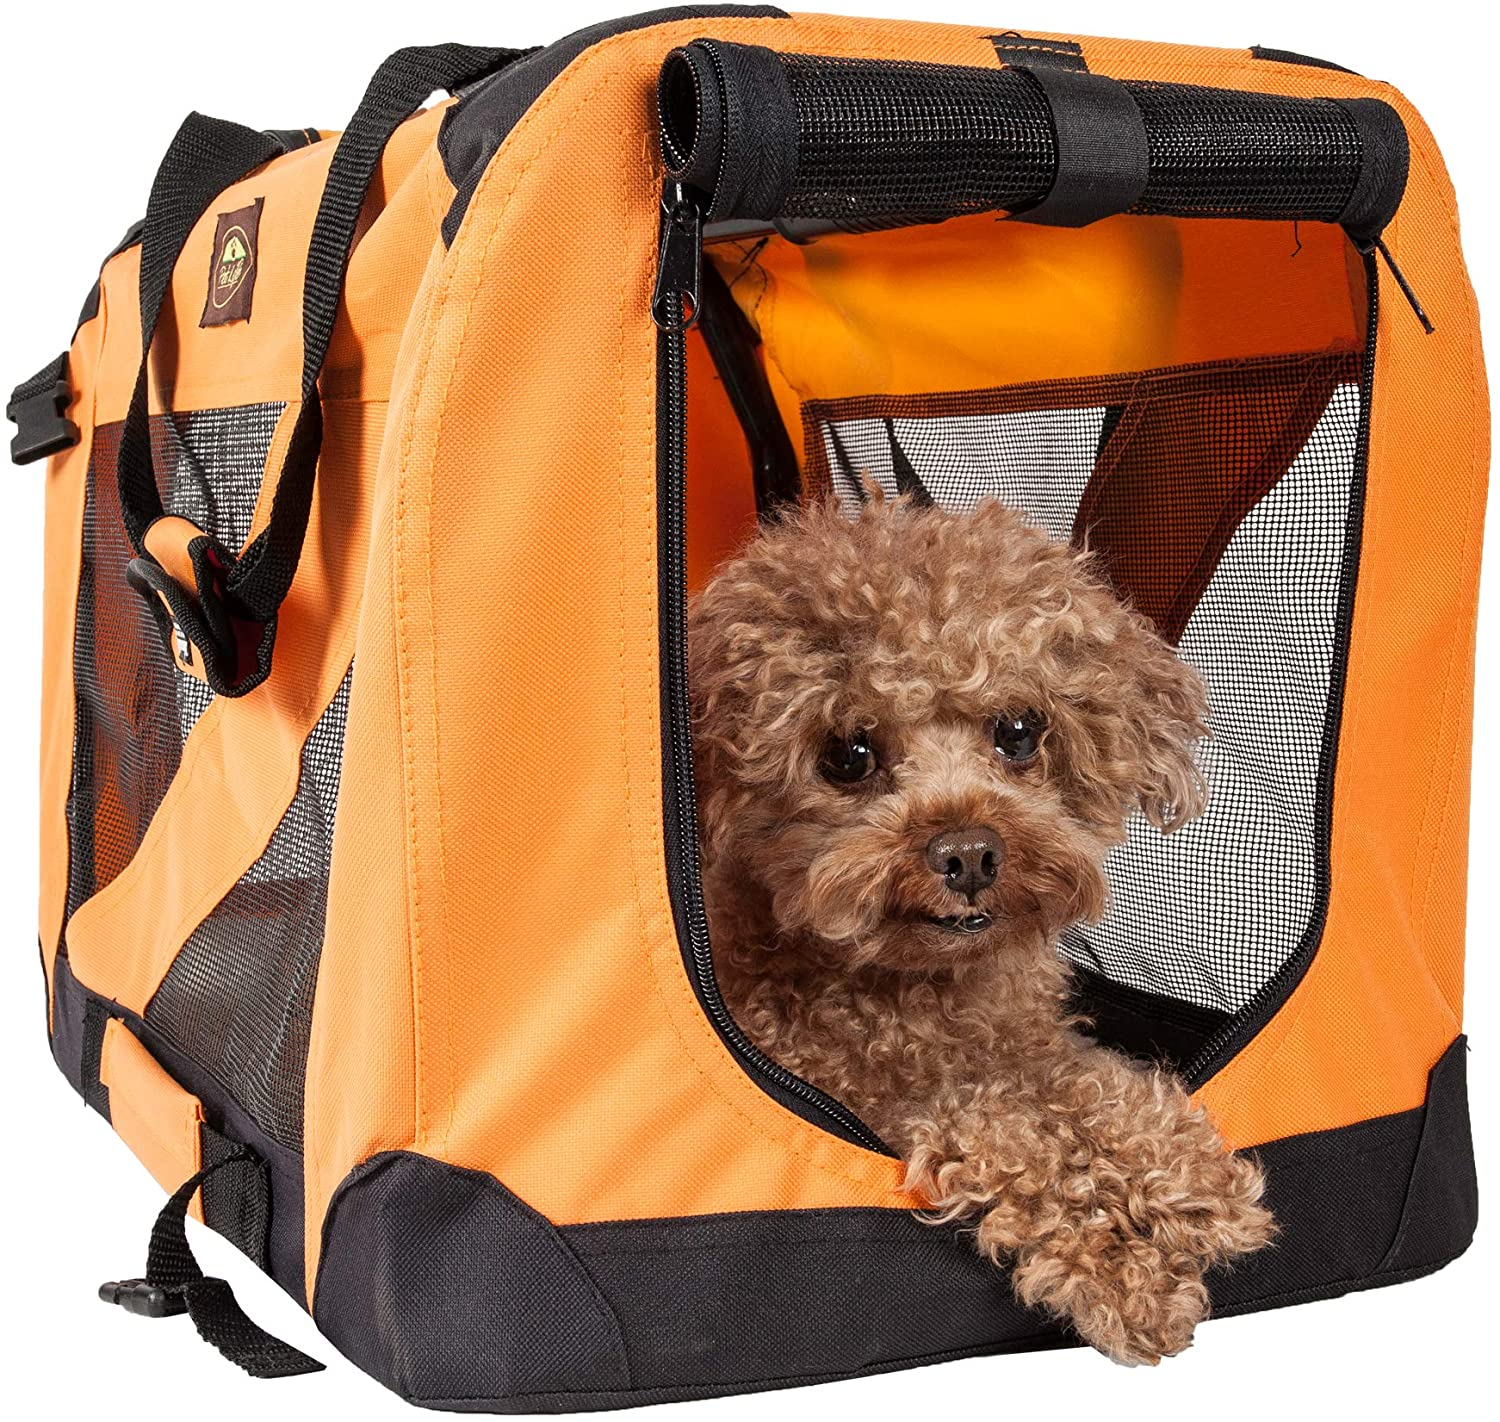 Folding Zippered 360 Vista View House Pet Crate